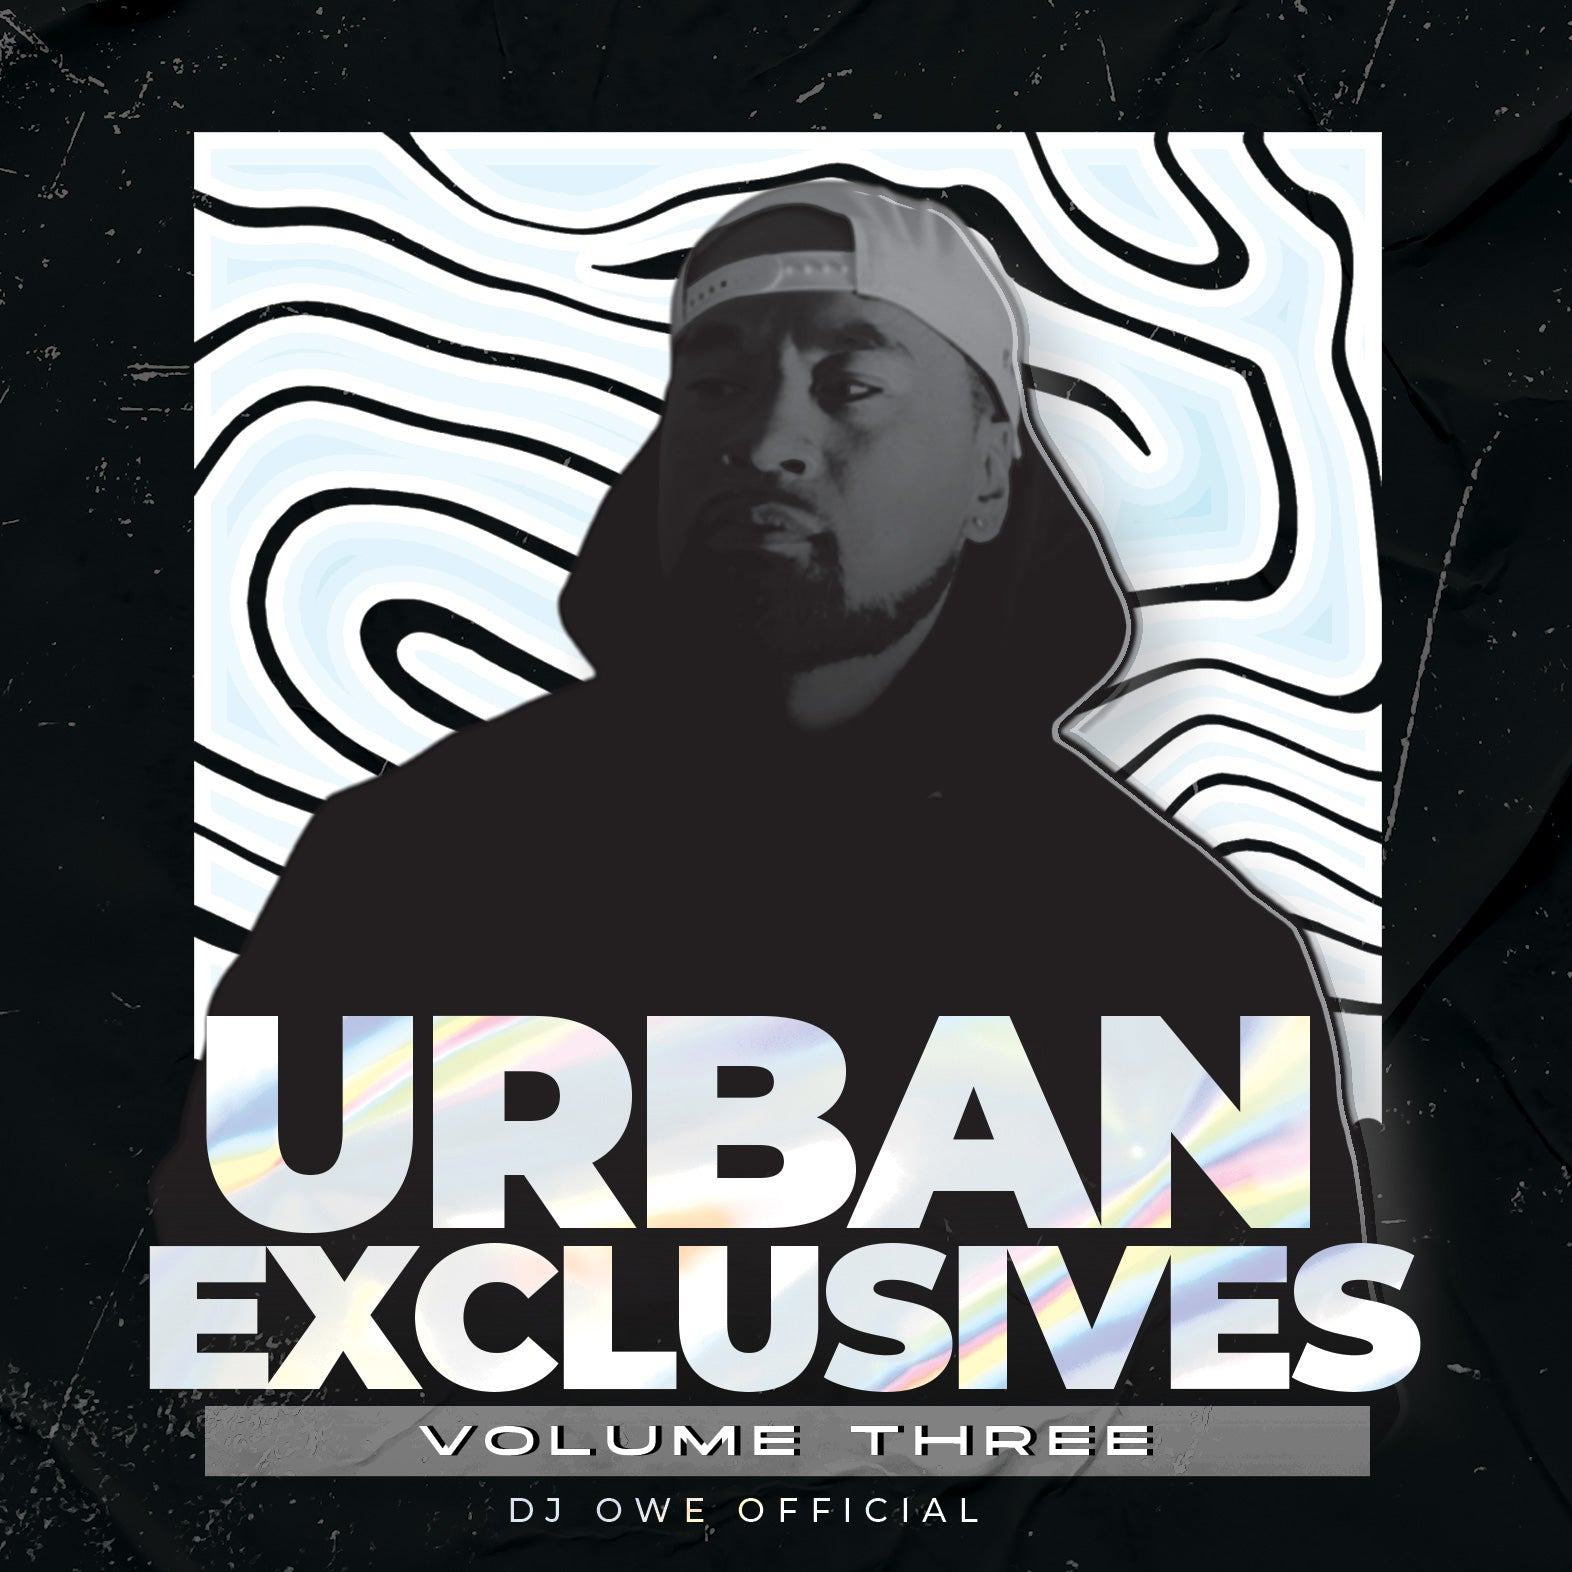 URBAN EXCLUSIVES VOL.3